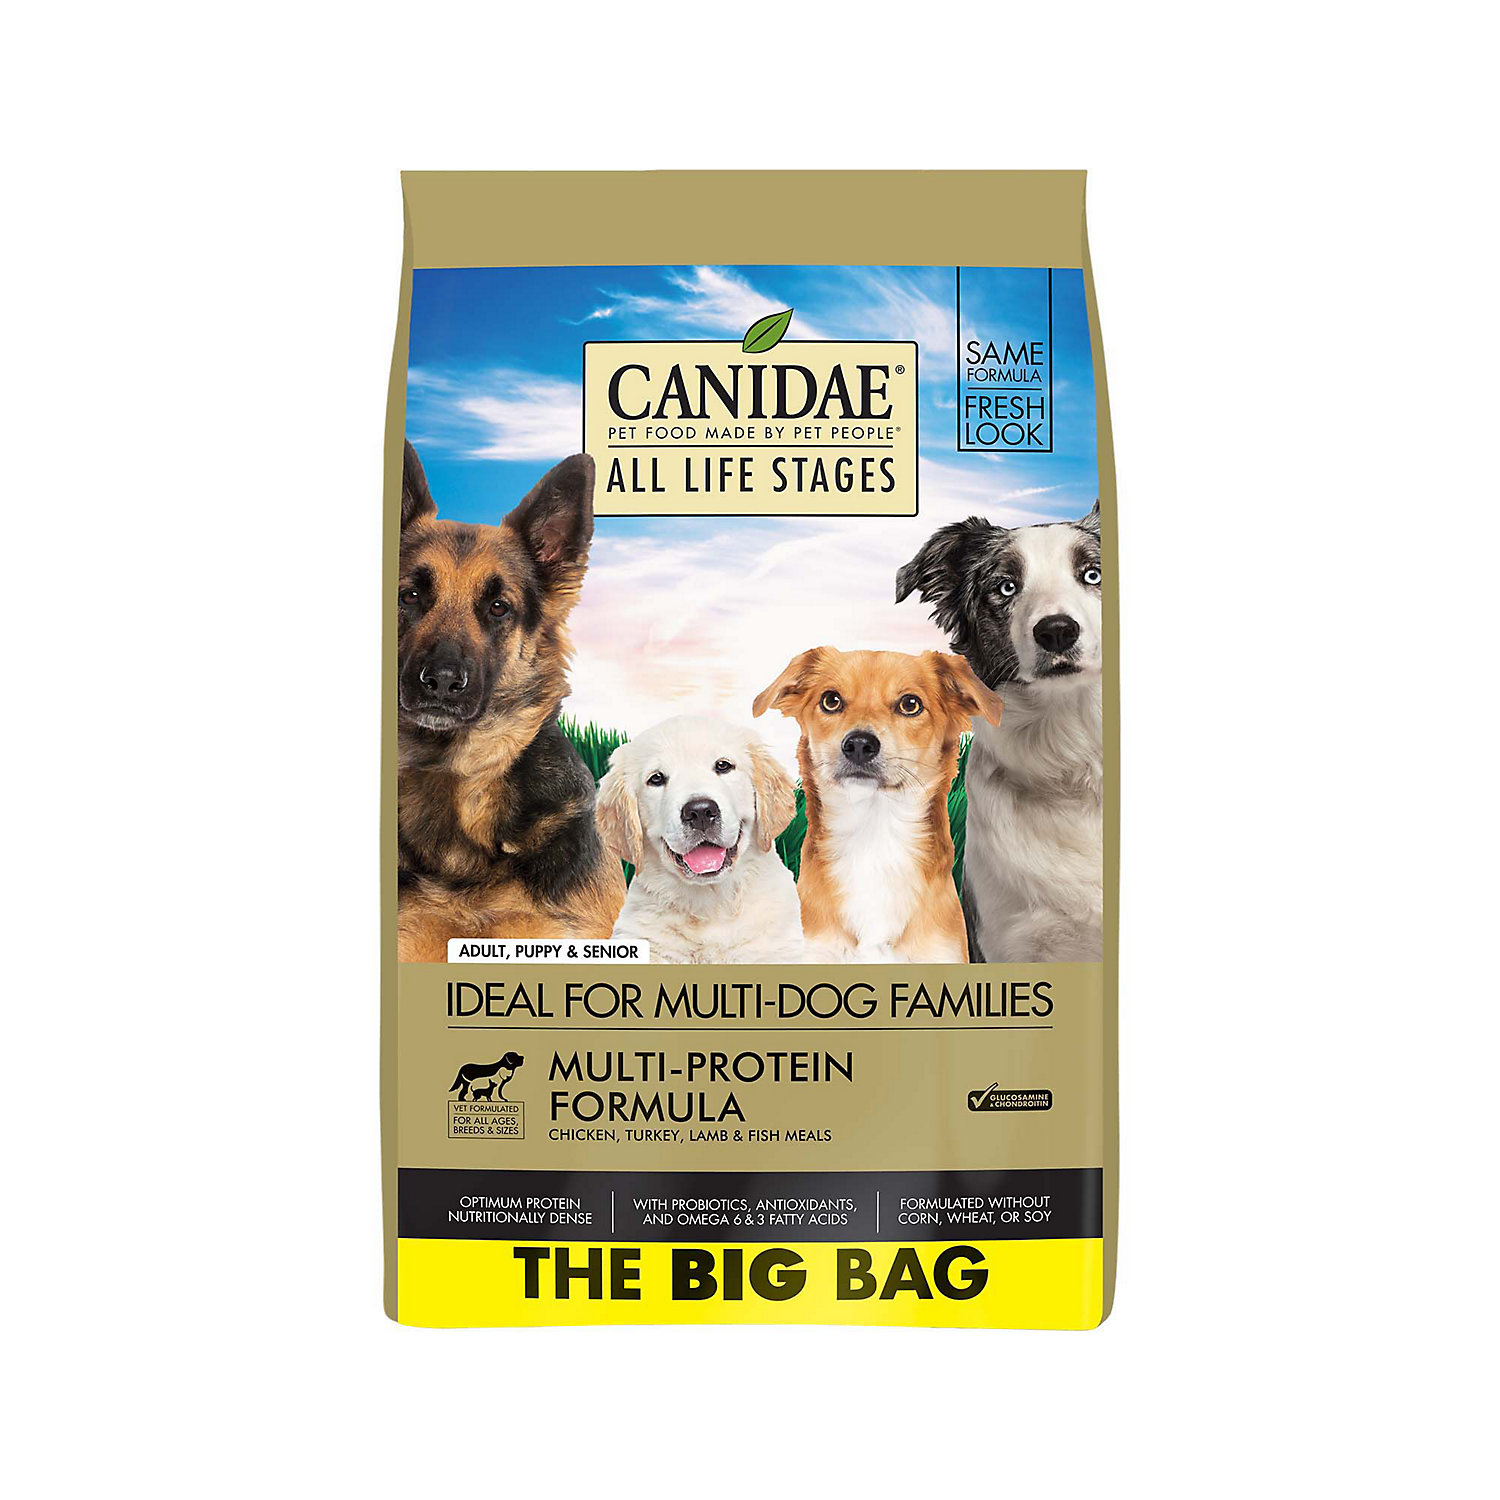 CANIDAE All Life Stages Chicken, Turkey, Lamb & Fish Meals Formula Dry Dog Food